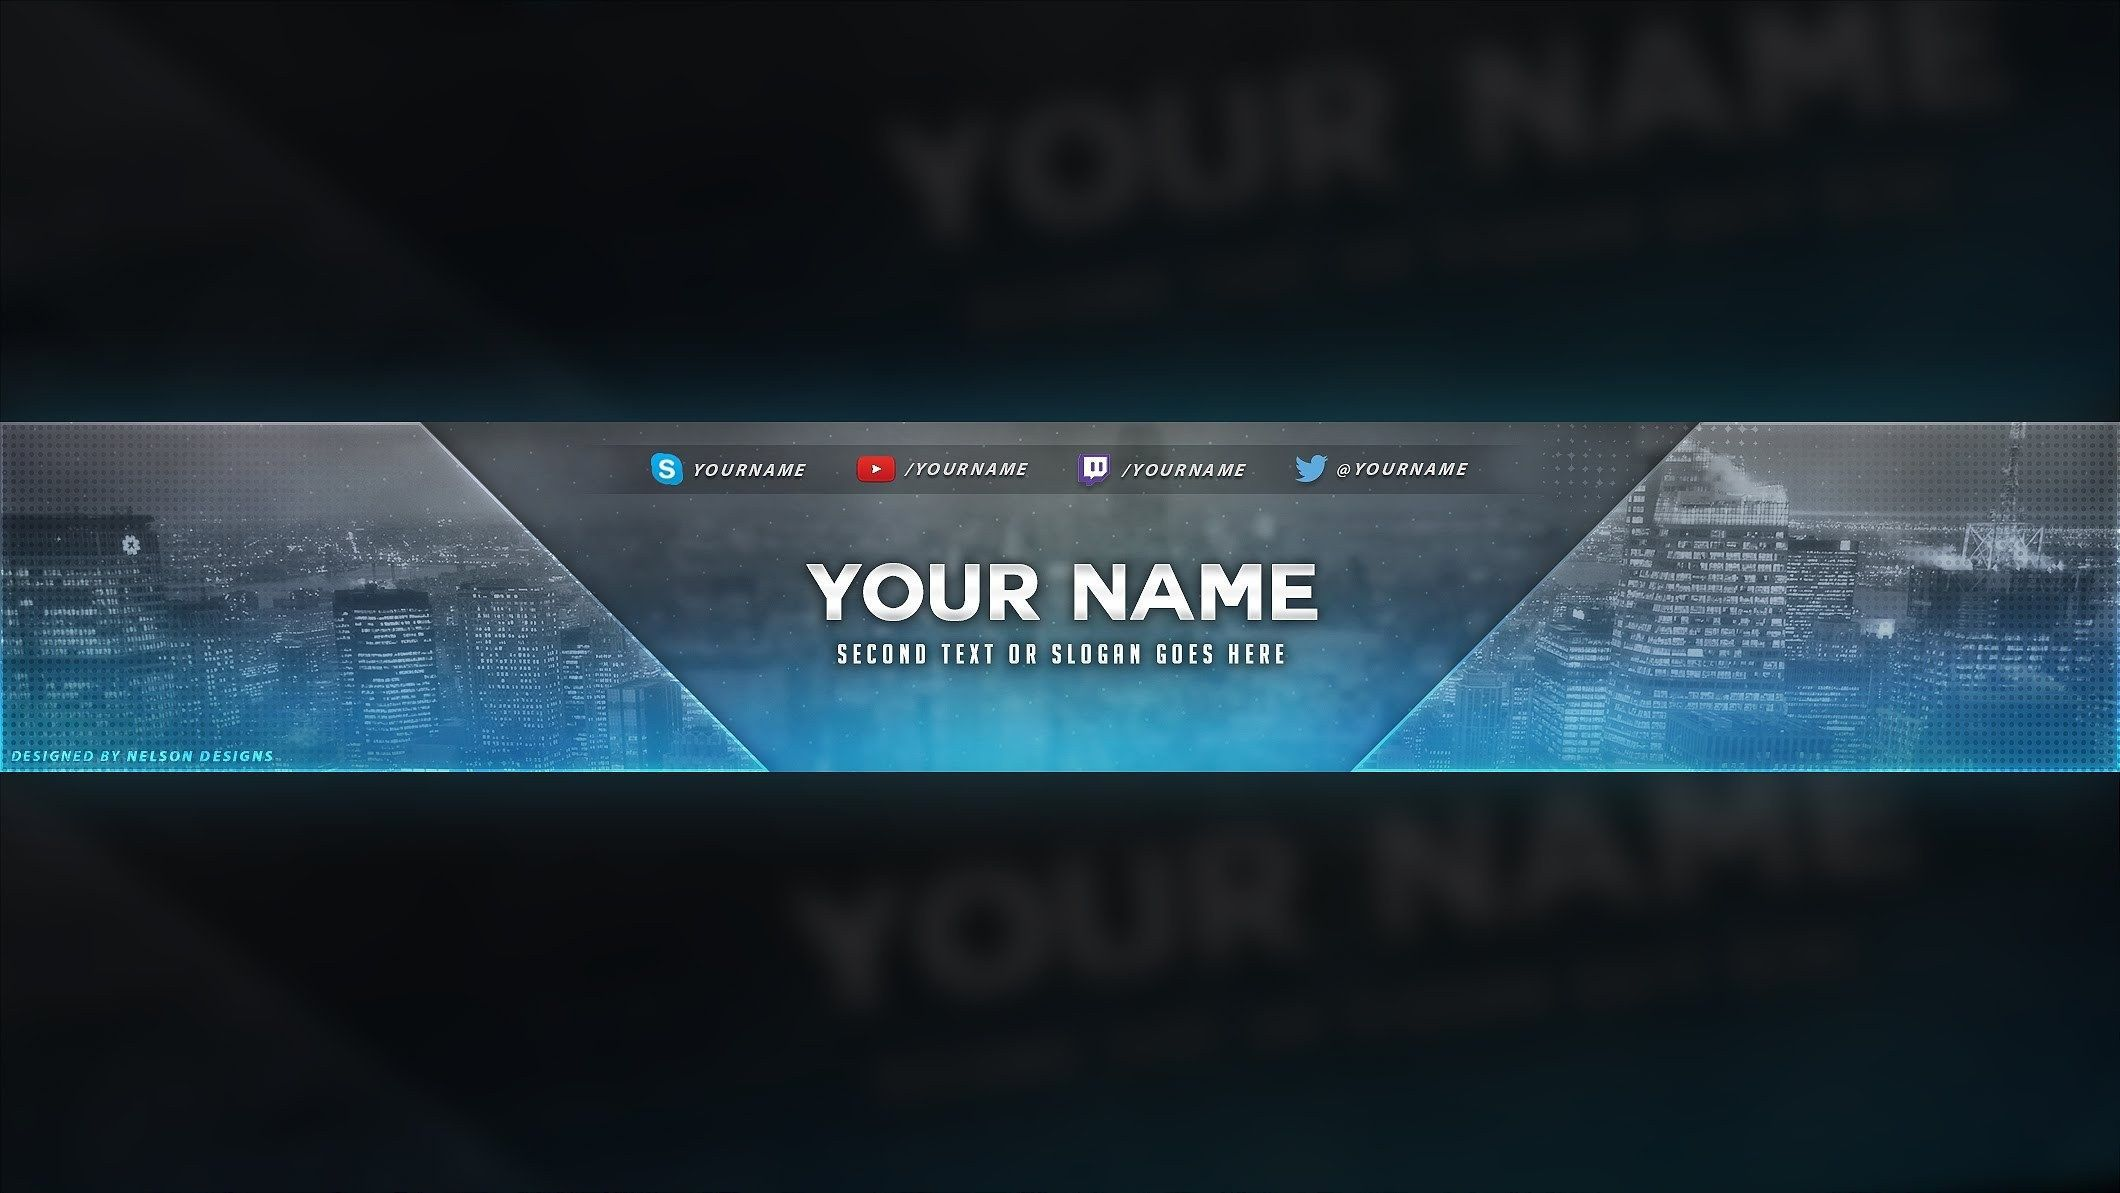 006 Awesome Youtube Channel Art Template Photoshop Download Highest Clarity Full